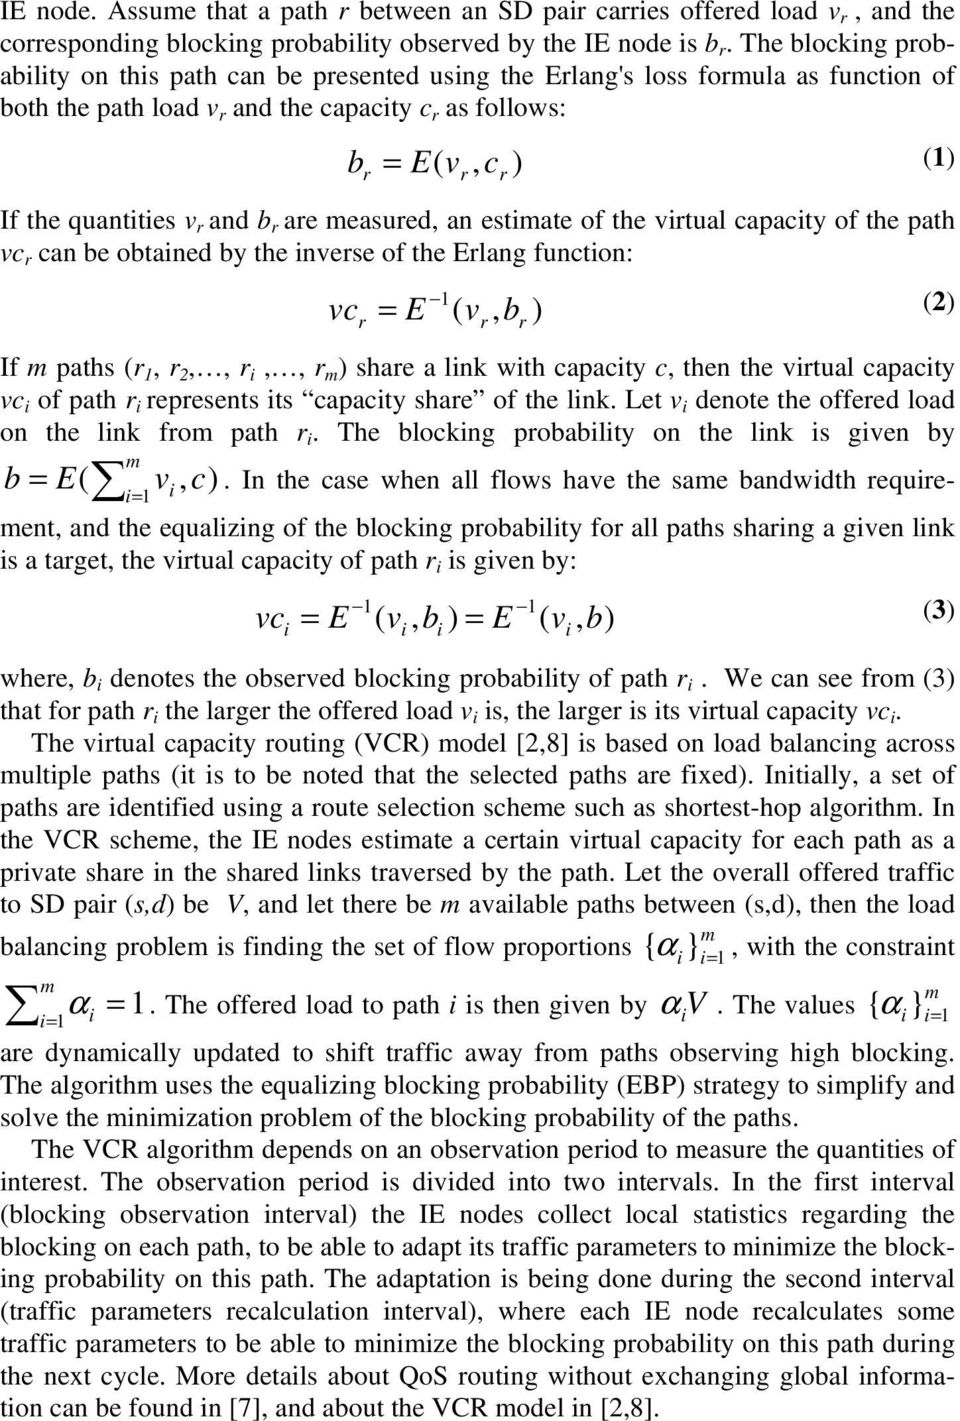 the virtual capacity of the path vc r can be obtained by the inverse of the Erlang function: vc r 1 = E ( v, b ) (2) If m paths (r 1, r 2,, r i,, r m ) share a link with capacity c, then the virtual